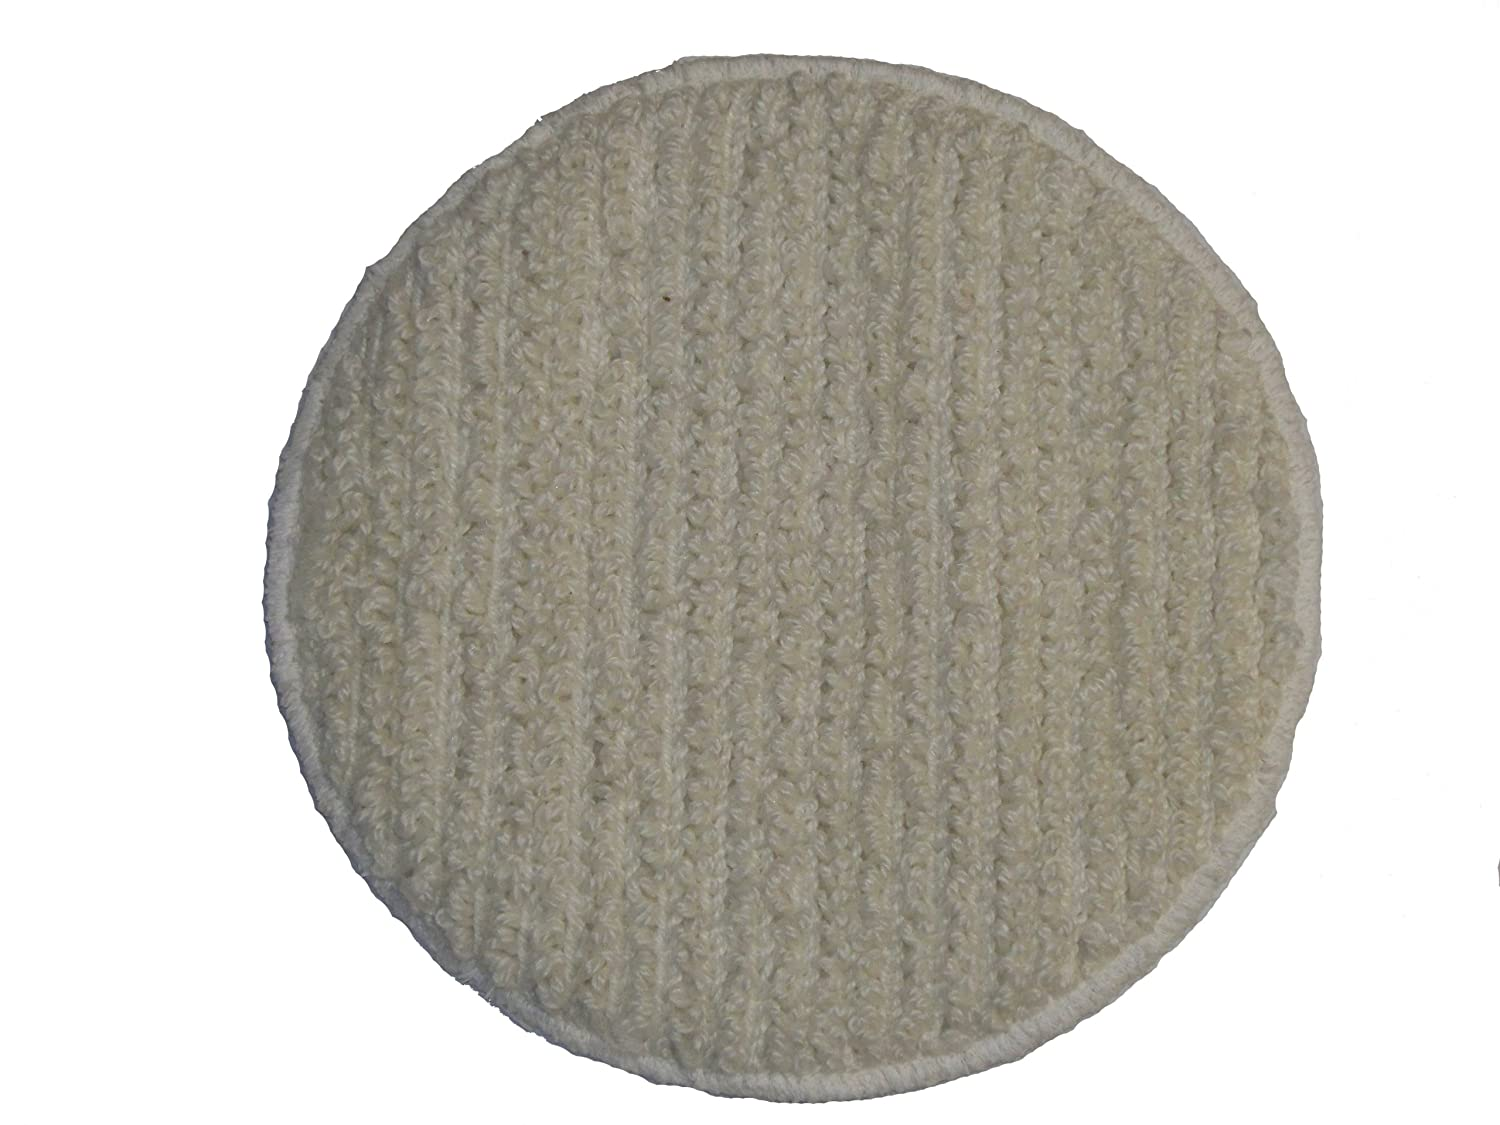 Oreck Commercial 437.053 Carpet Bonnet Pad, 12-Inch Diameter for 550MC Orbiter Floor Machine